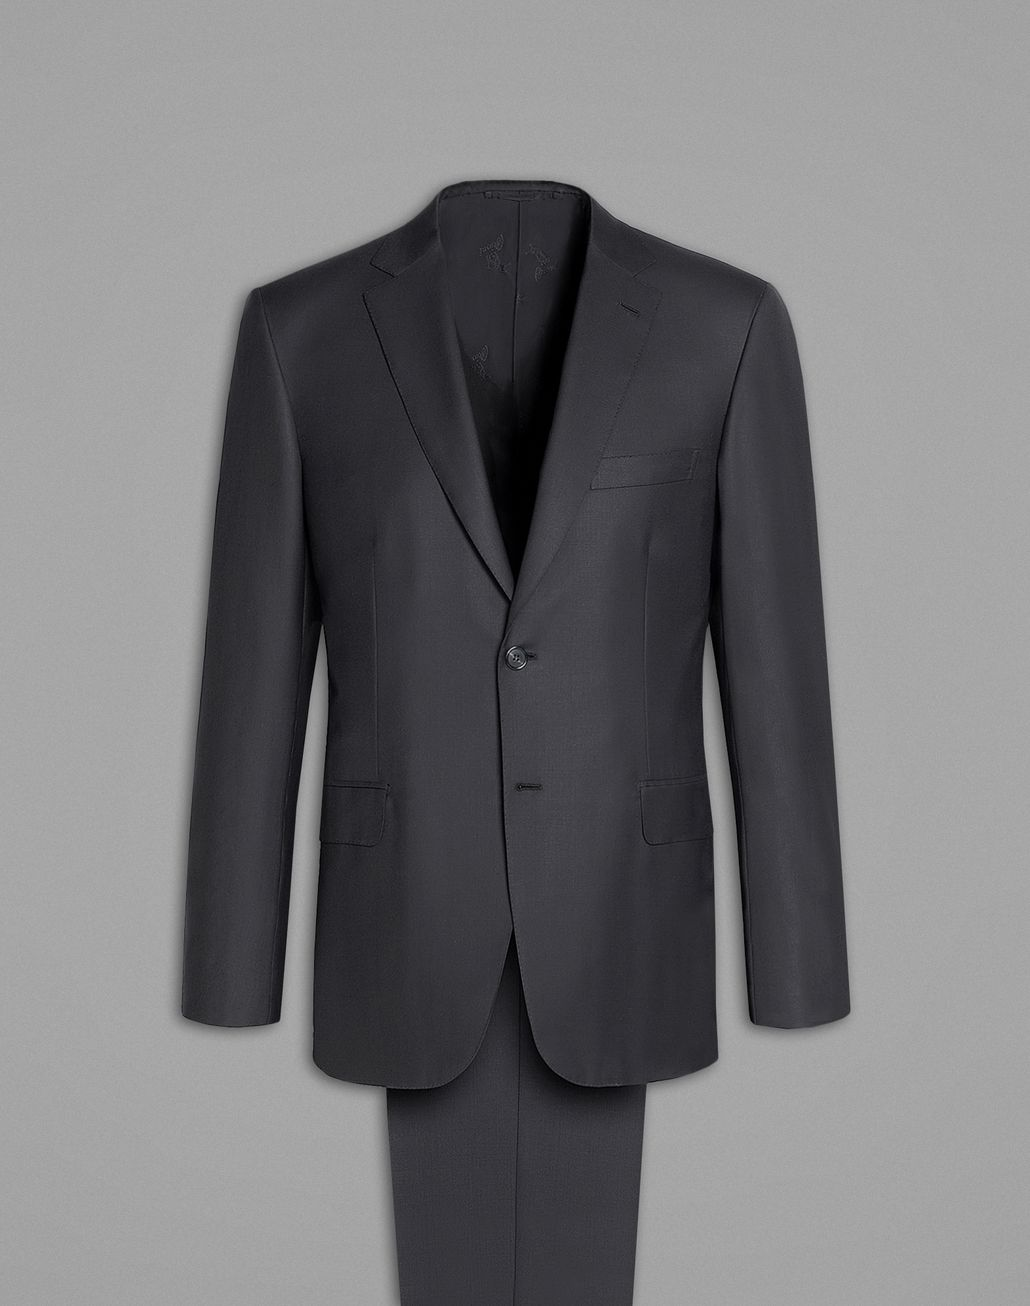 BRIONI Abito Brunico Color Carbone Suits & Jackets Uomo f